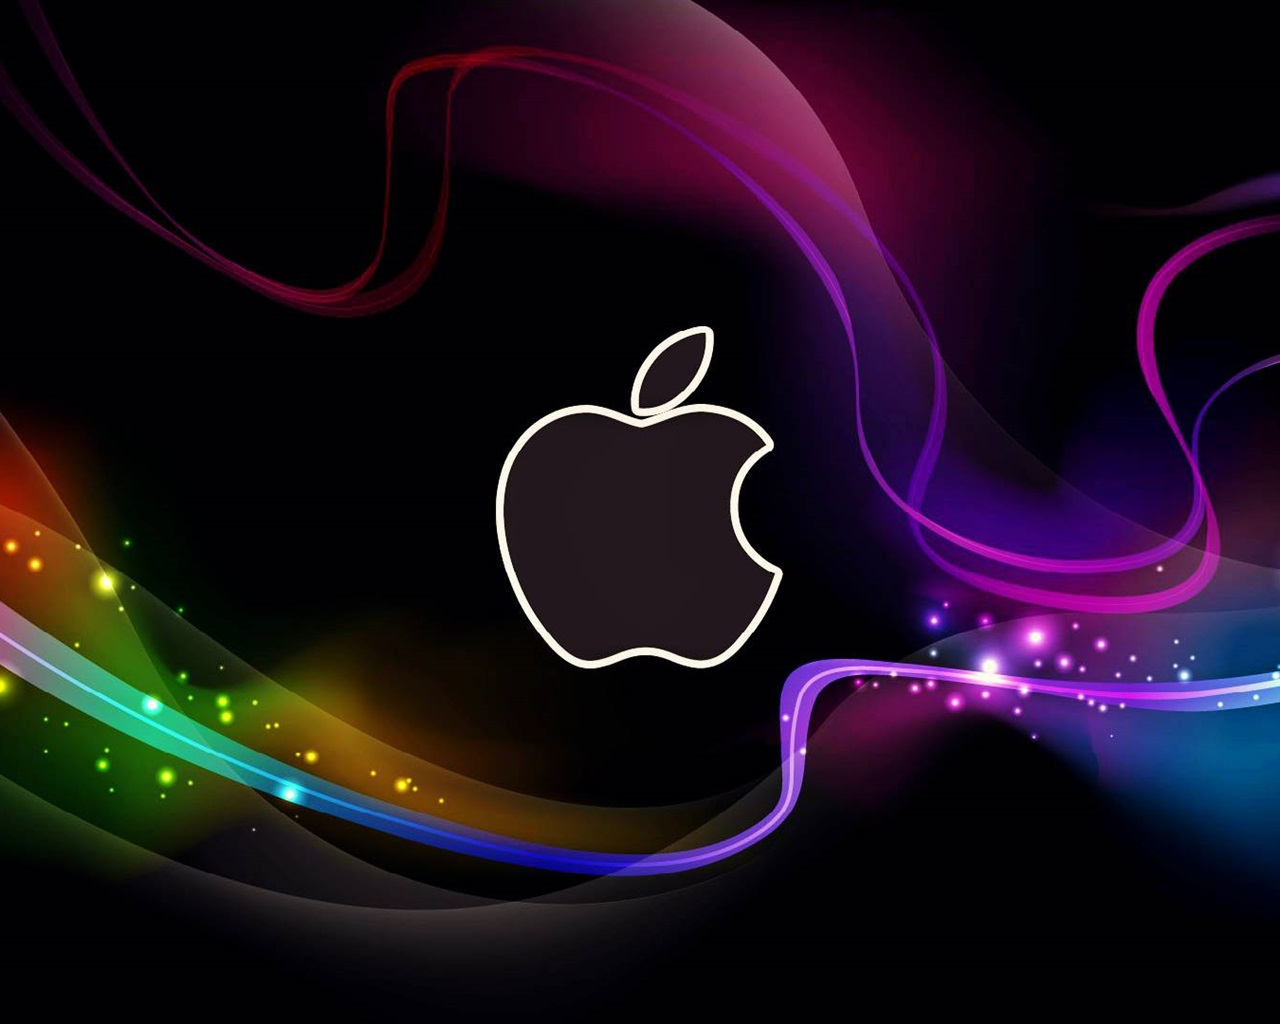 Wallpaper Abstract Apple logo, colorful lines 1920x1080 ...